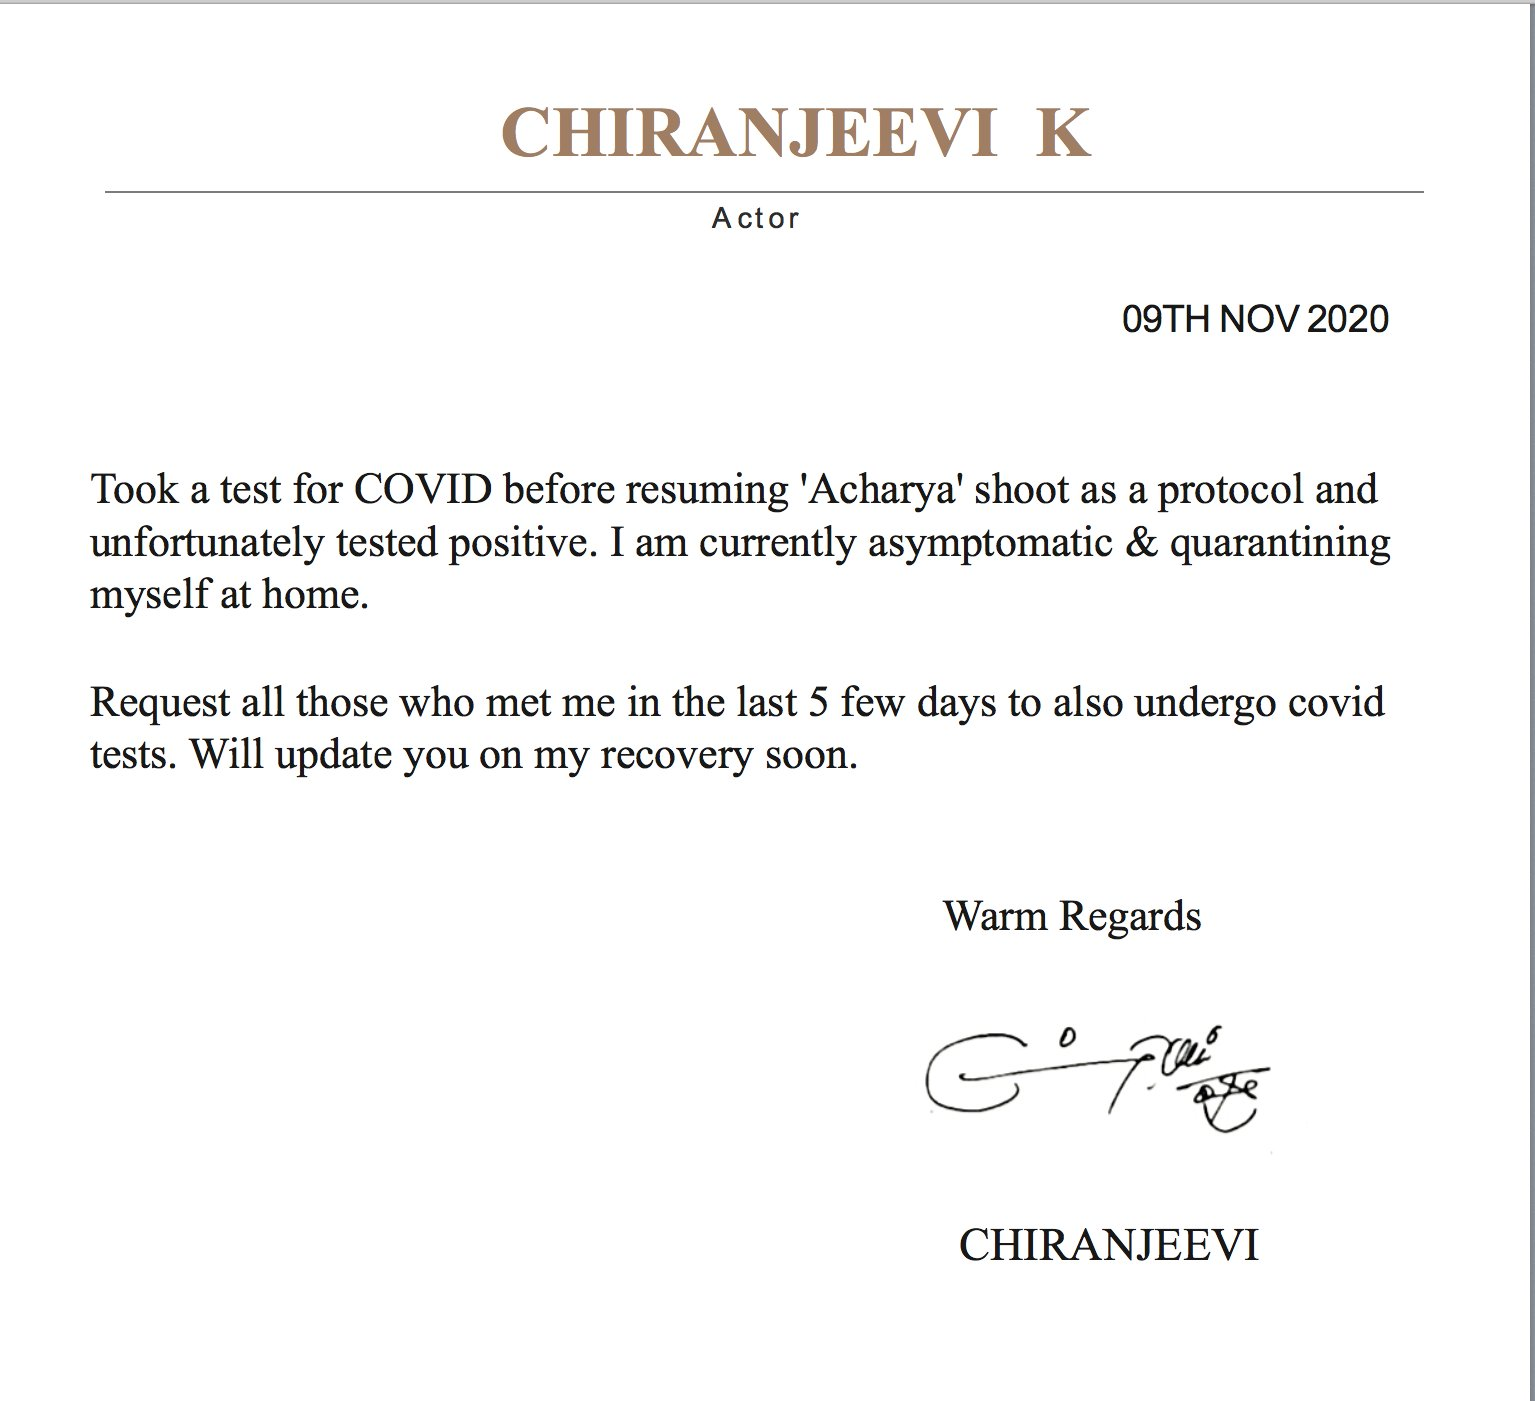 Chiranjeevi Tests Positive for Covid-19